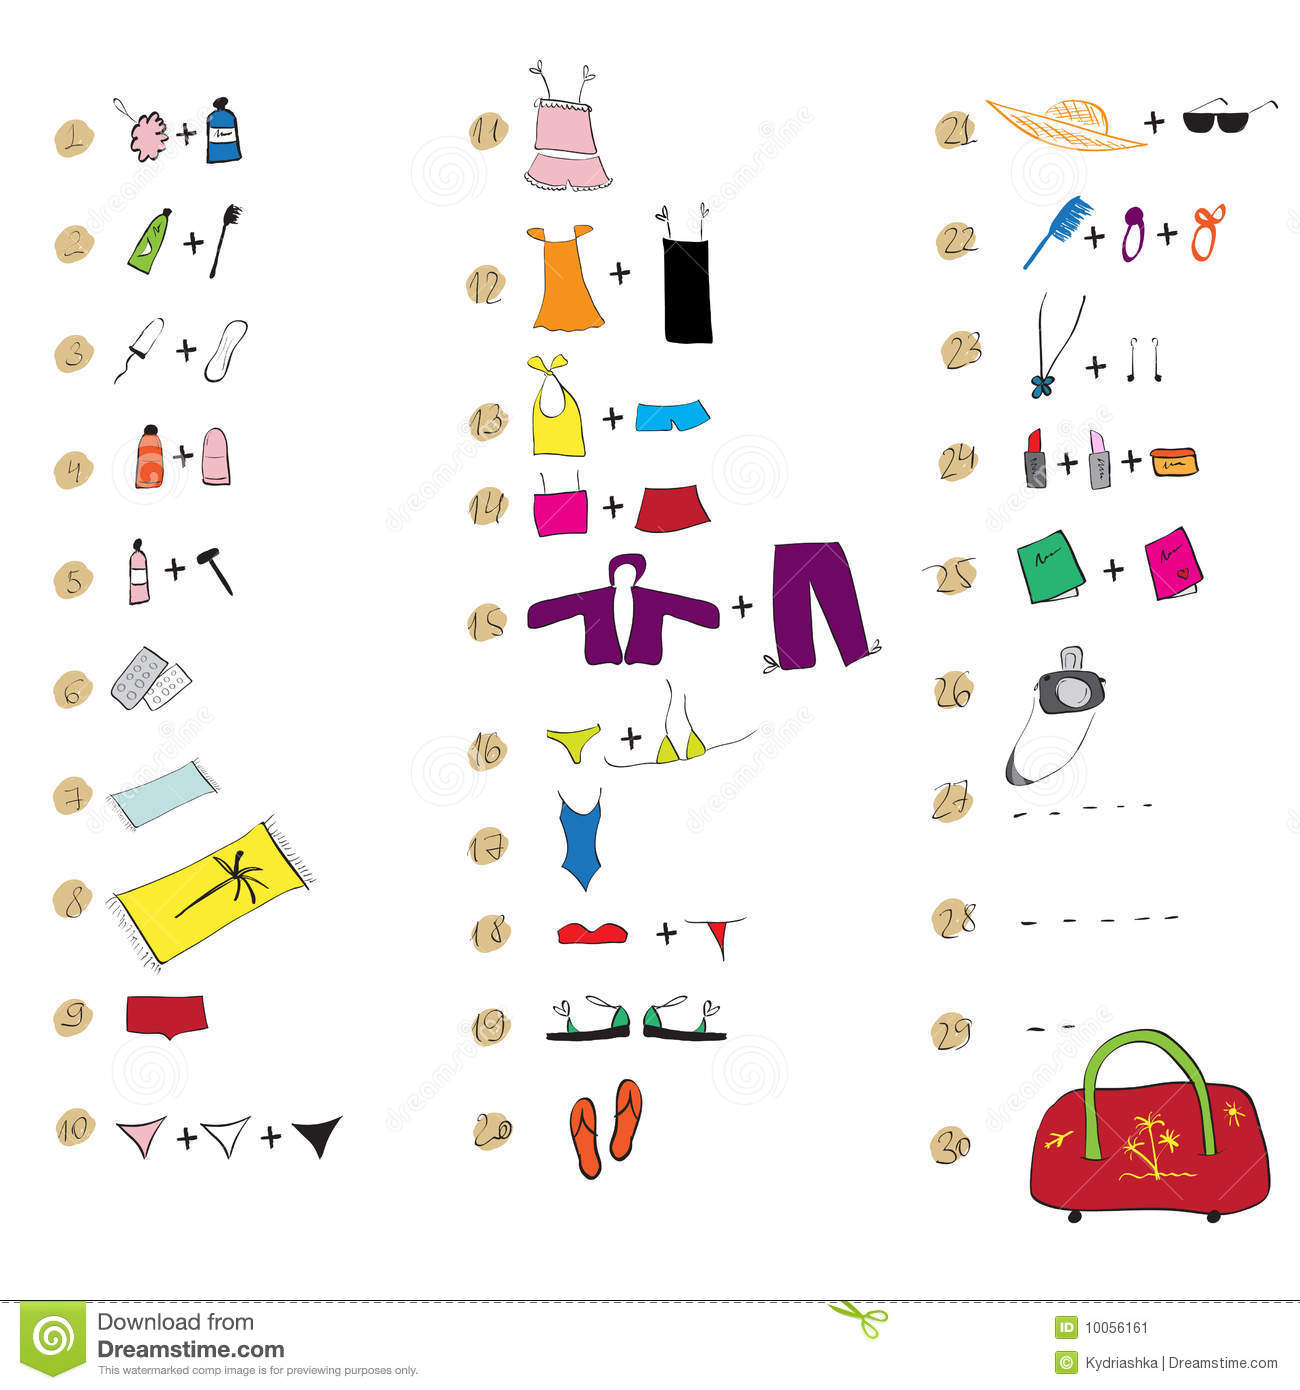 Clothes worksheet for primary